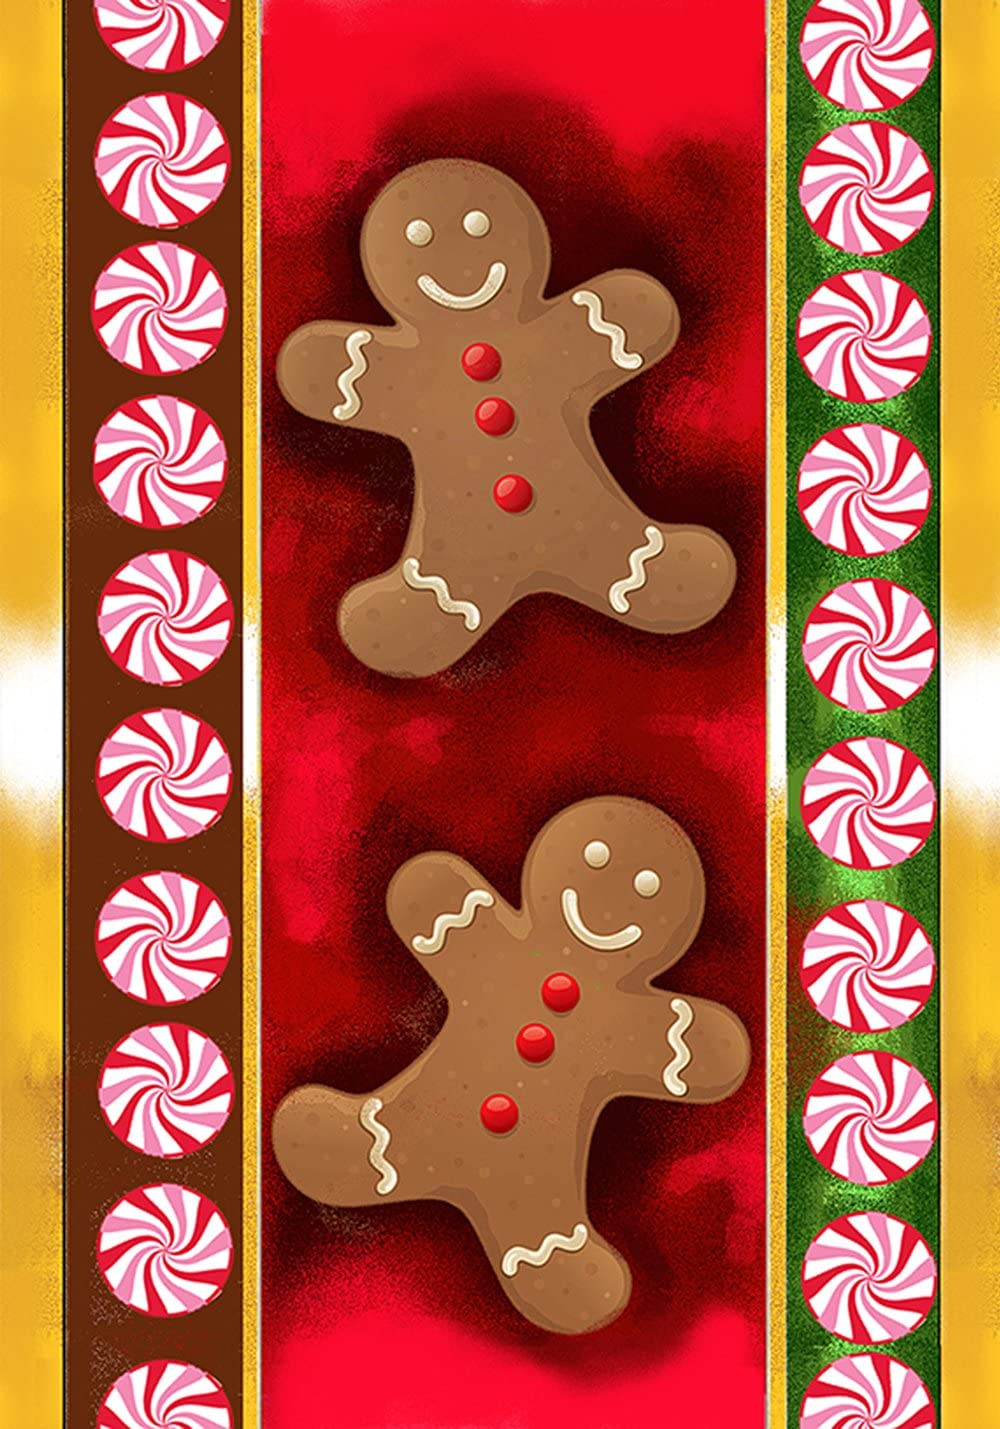 Toland Home Garden Gingerbread Men 12.5 x 18 Inch Decorative Colorful Christmas Cookie Peppermint Garden Flag